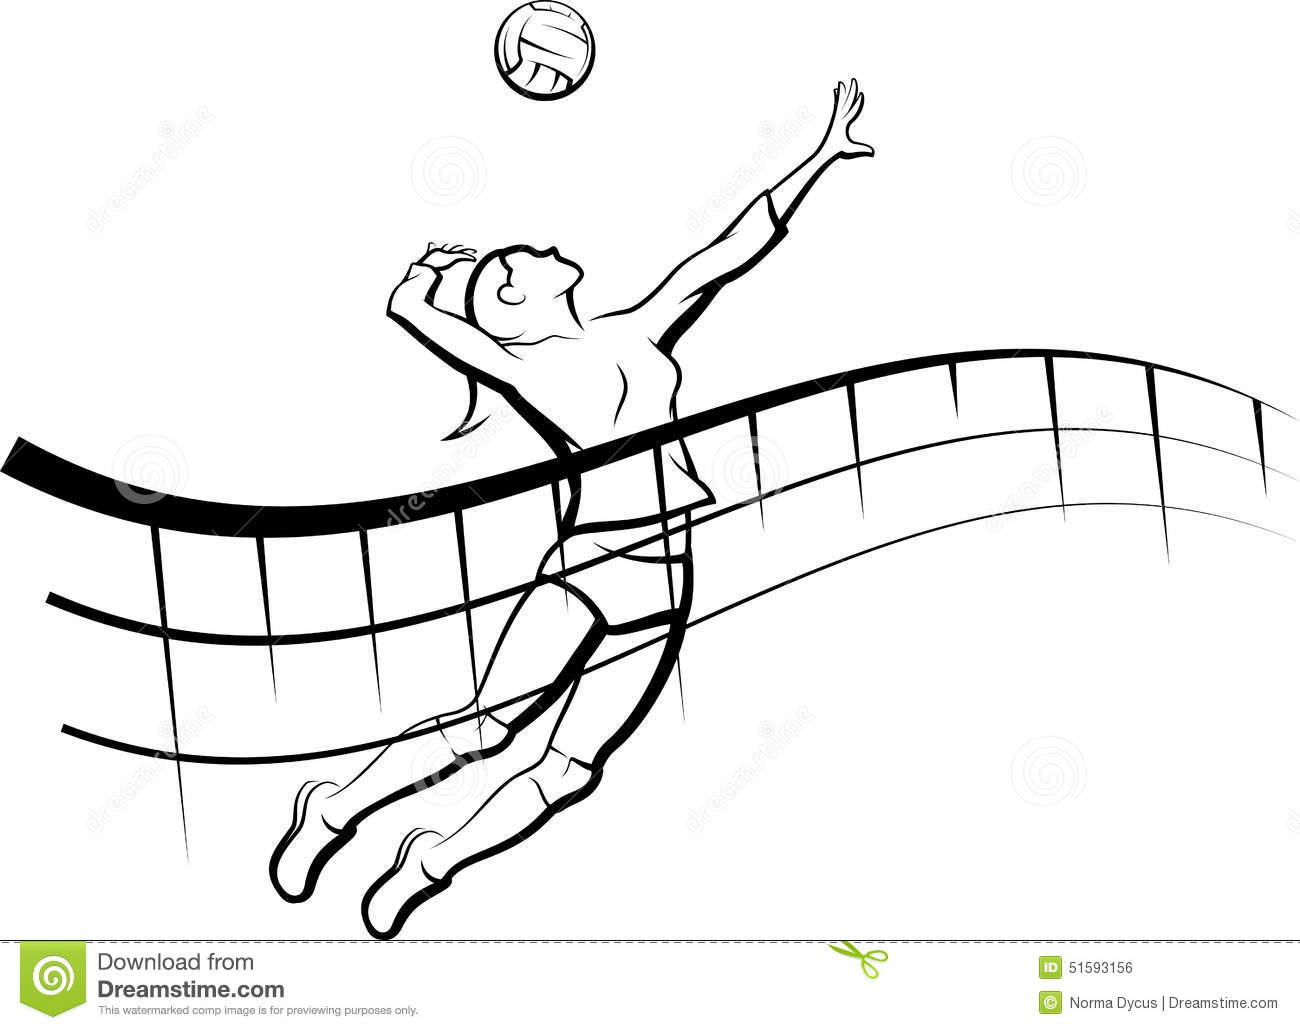 Line Drawing Net : Volleyball spike with flowing net stock illustration